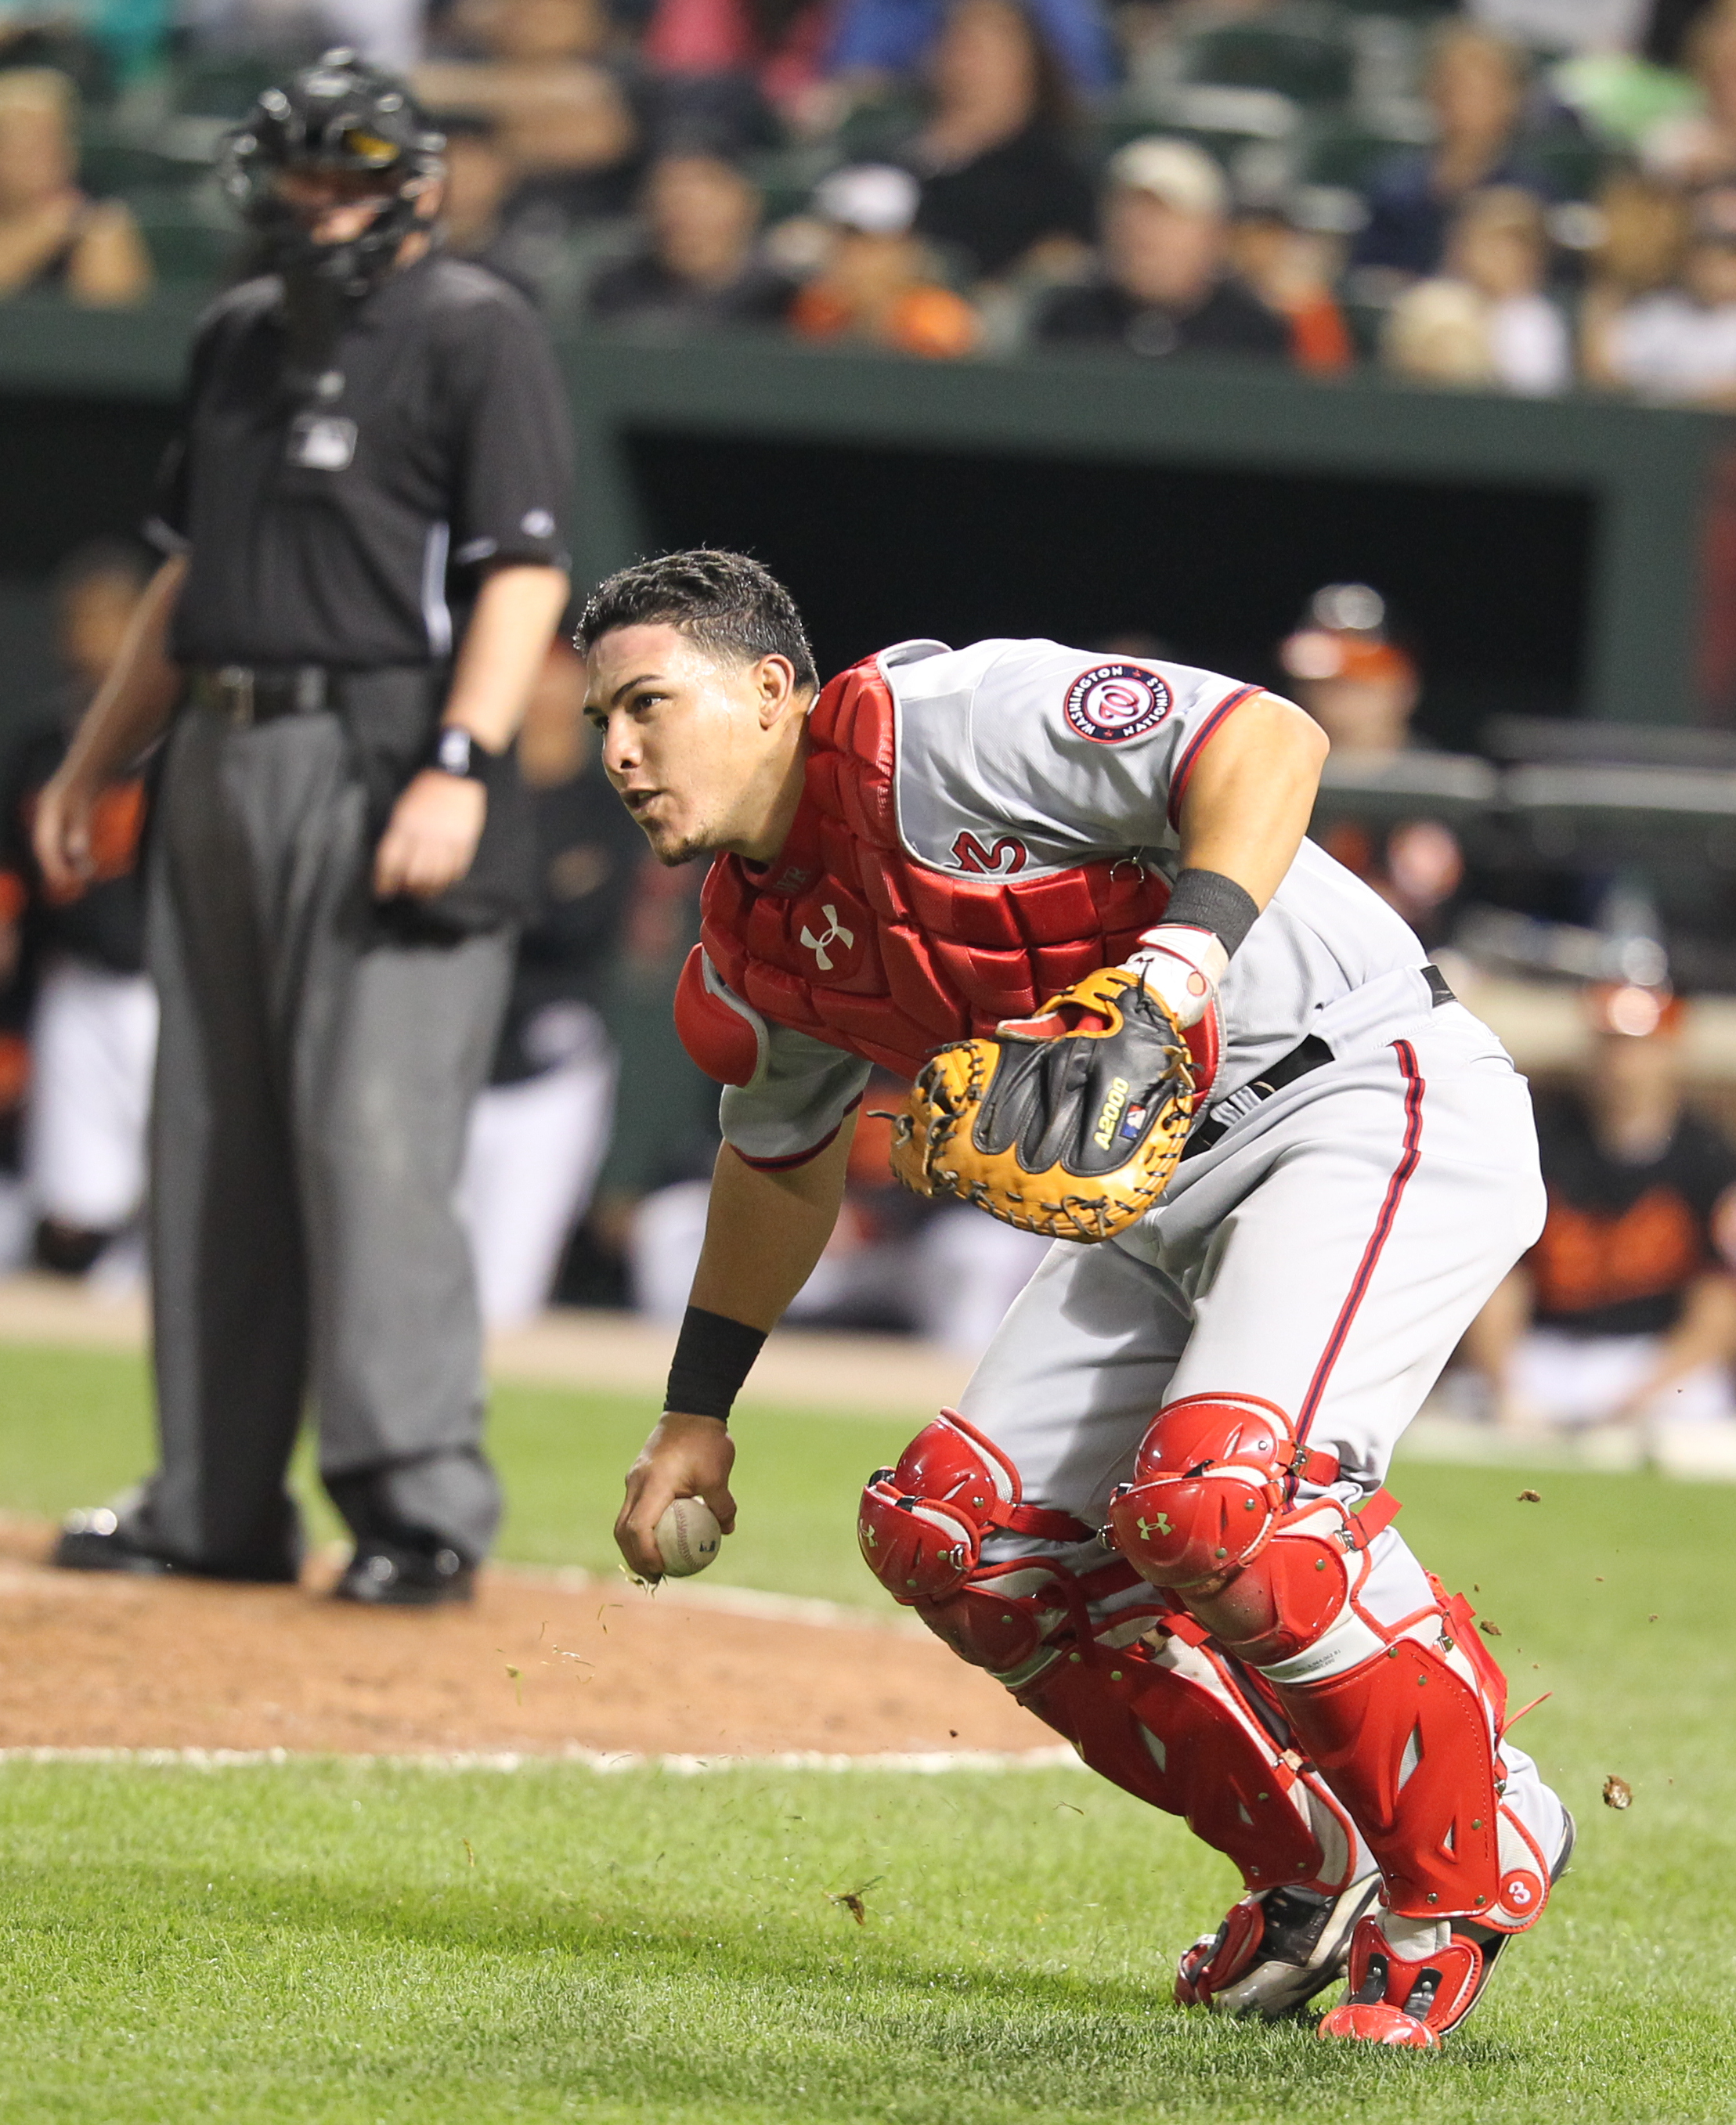 The Rays reportedly have inked a two-year deal with catcher Wilson Ramos, formerly of the Washington Nationals. (Photo Credit: Keith Allison)